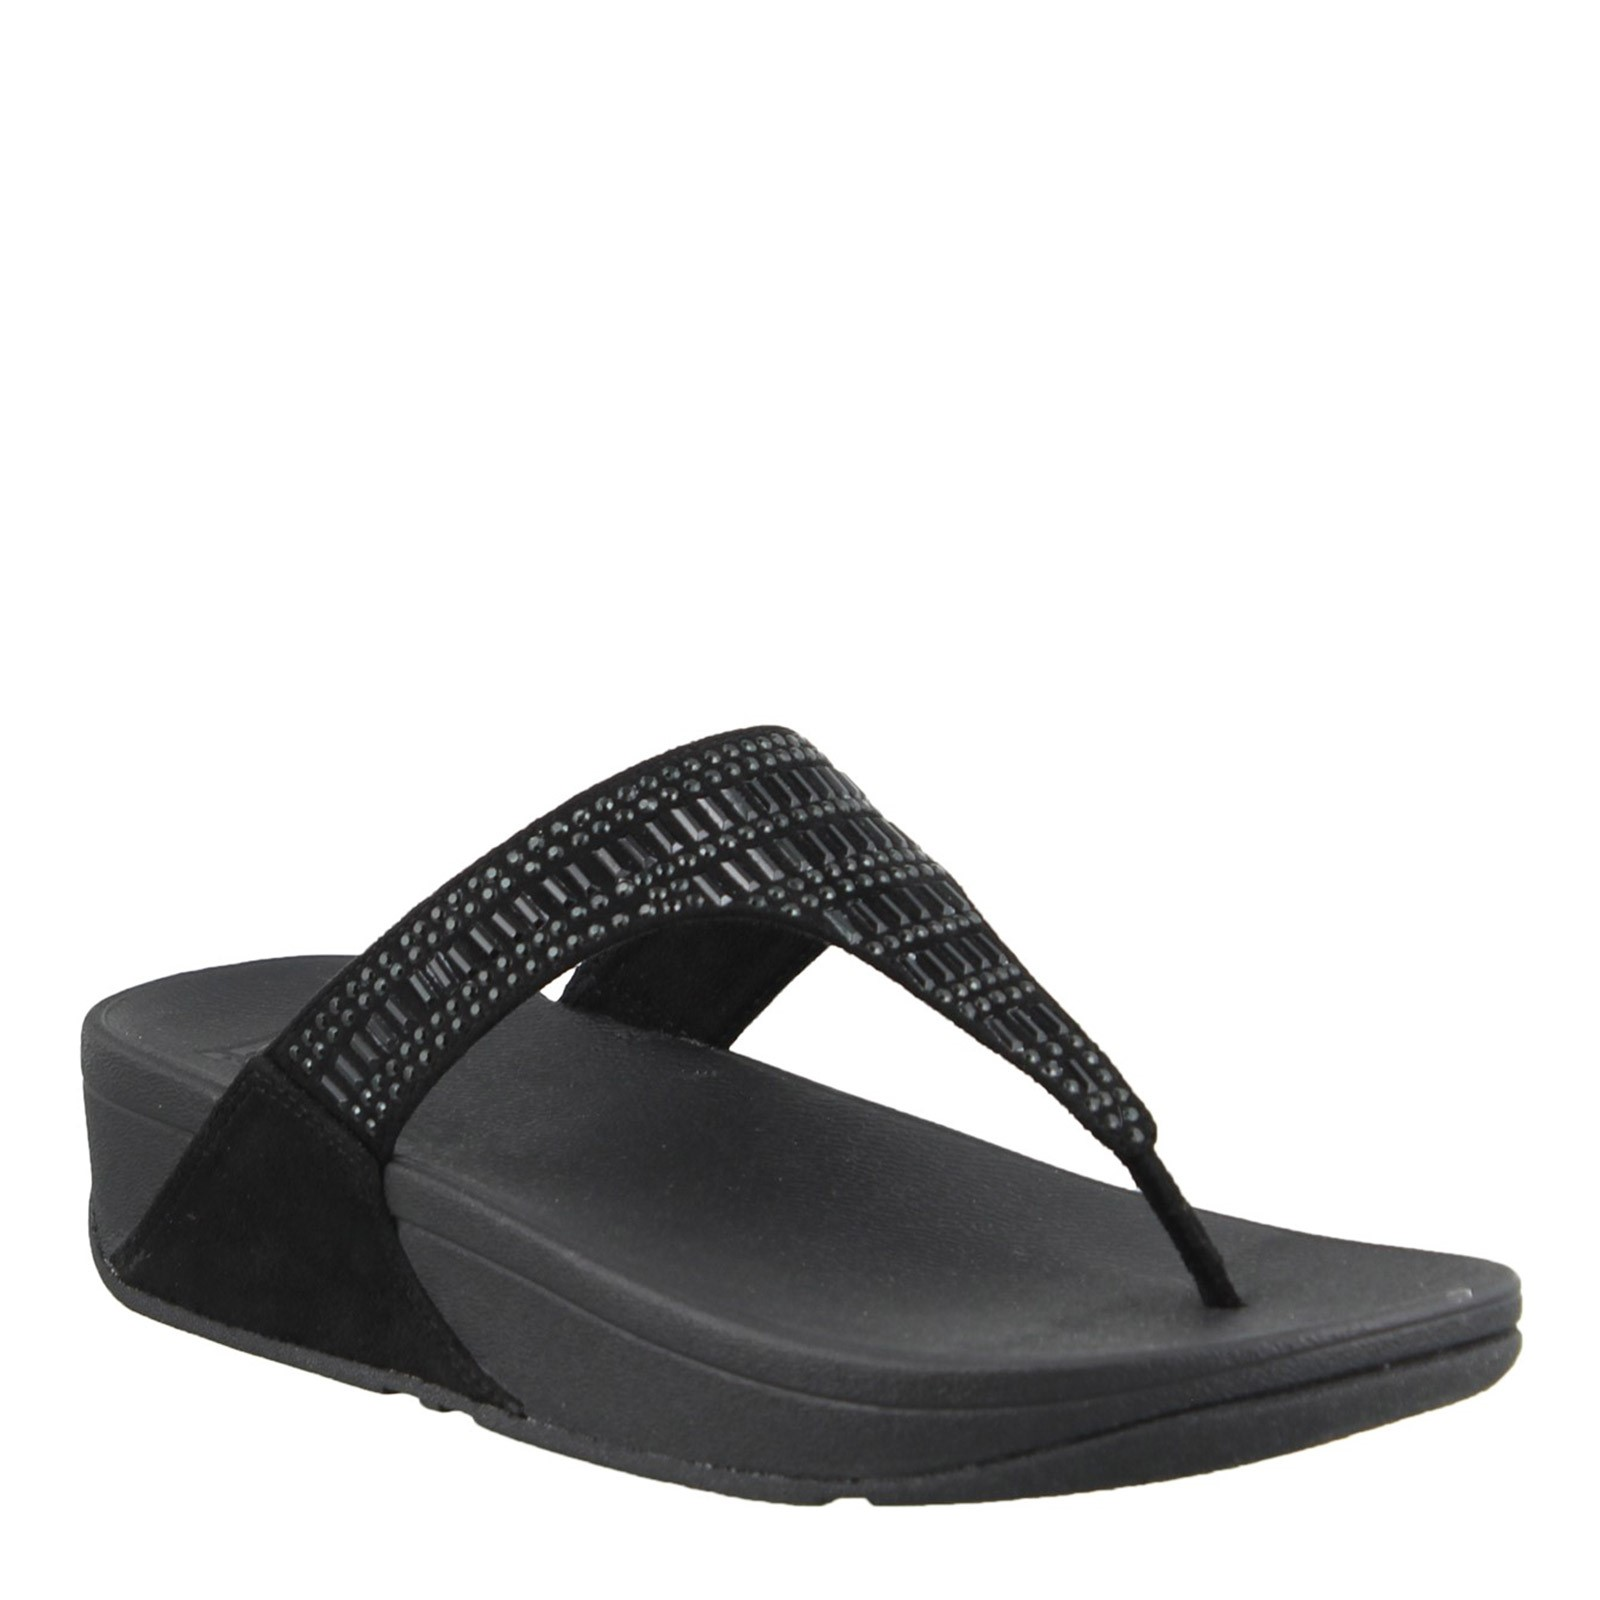 Women's FitFlop, Incastone Thong Sandals